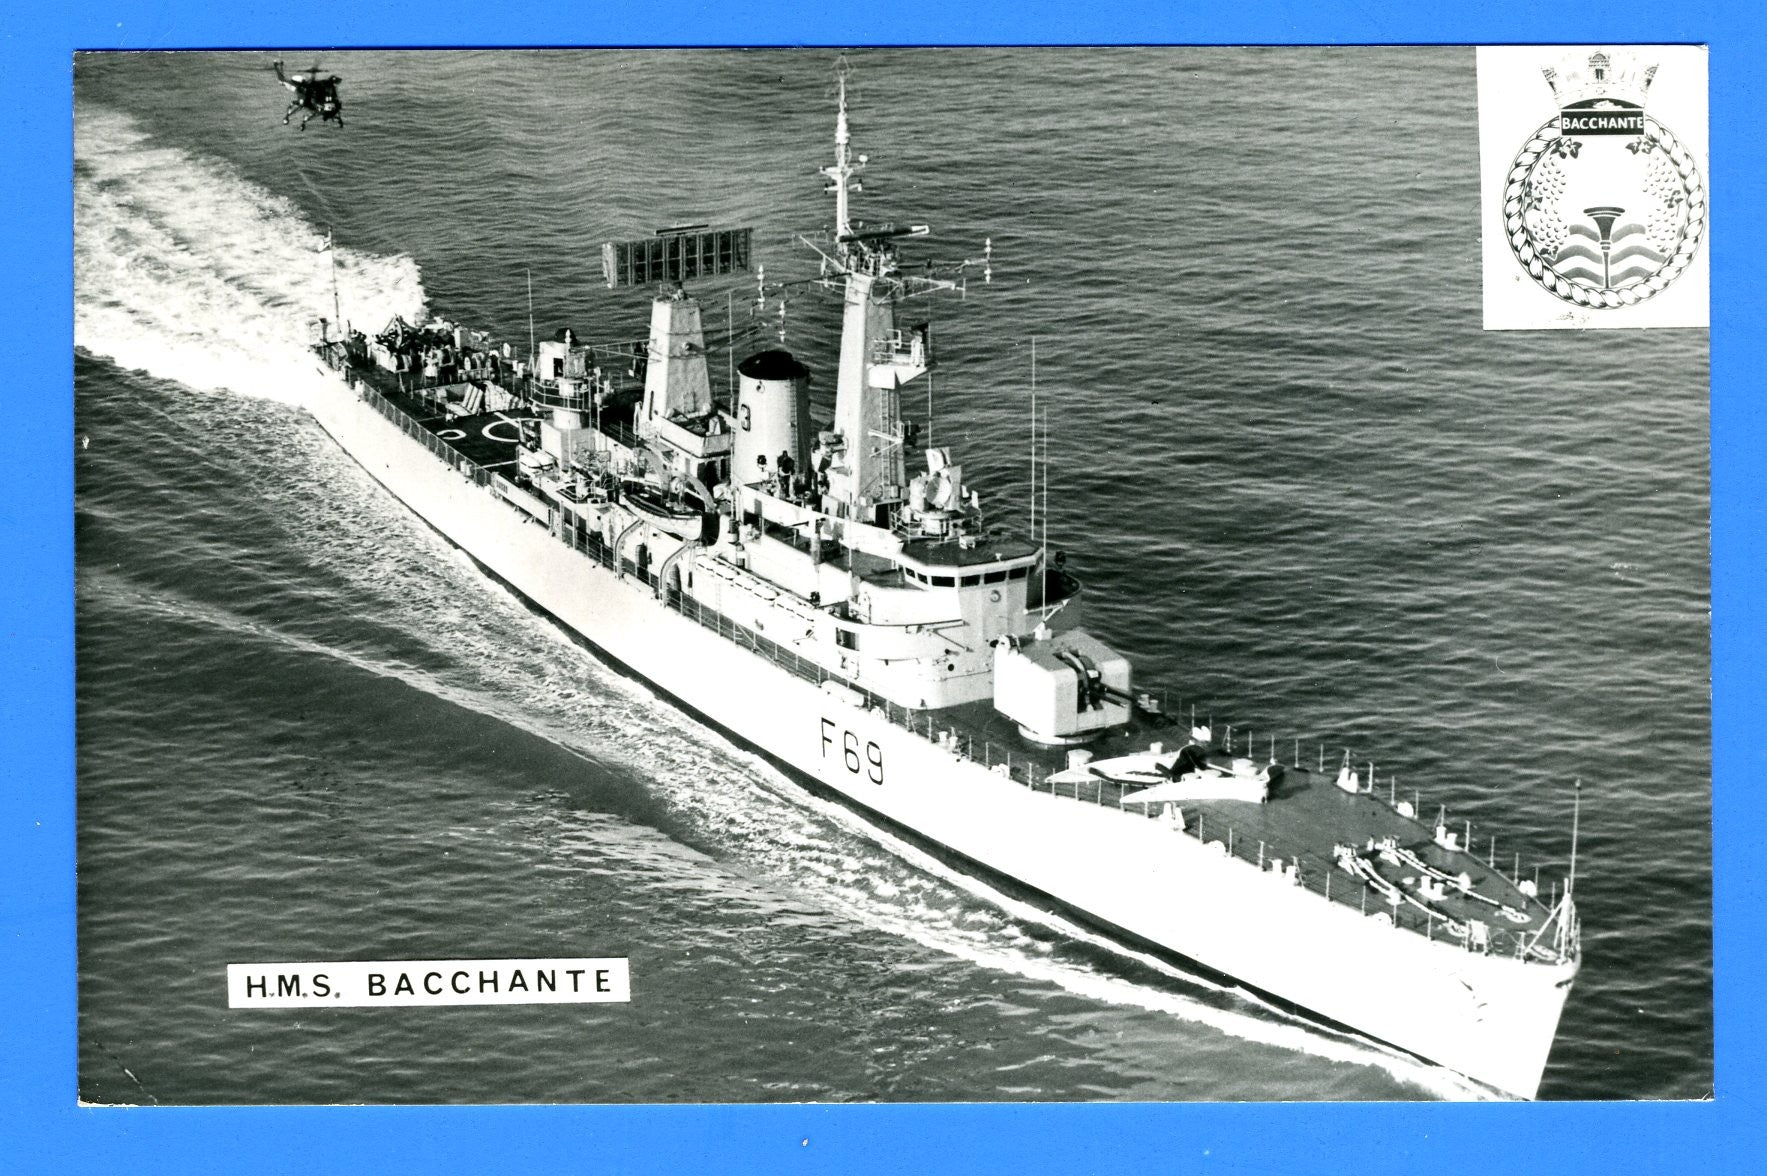 HMS Bacchante F69 Unused Postcard by Gale & Polden (Blank Back)